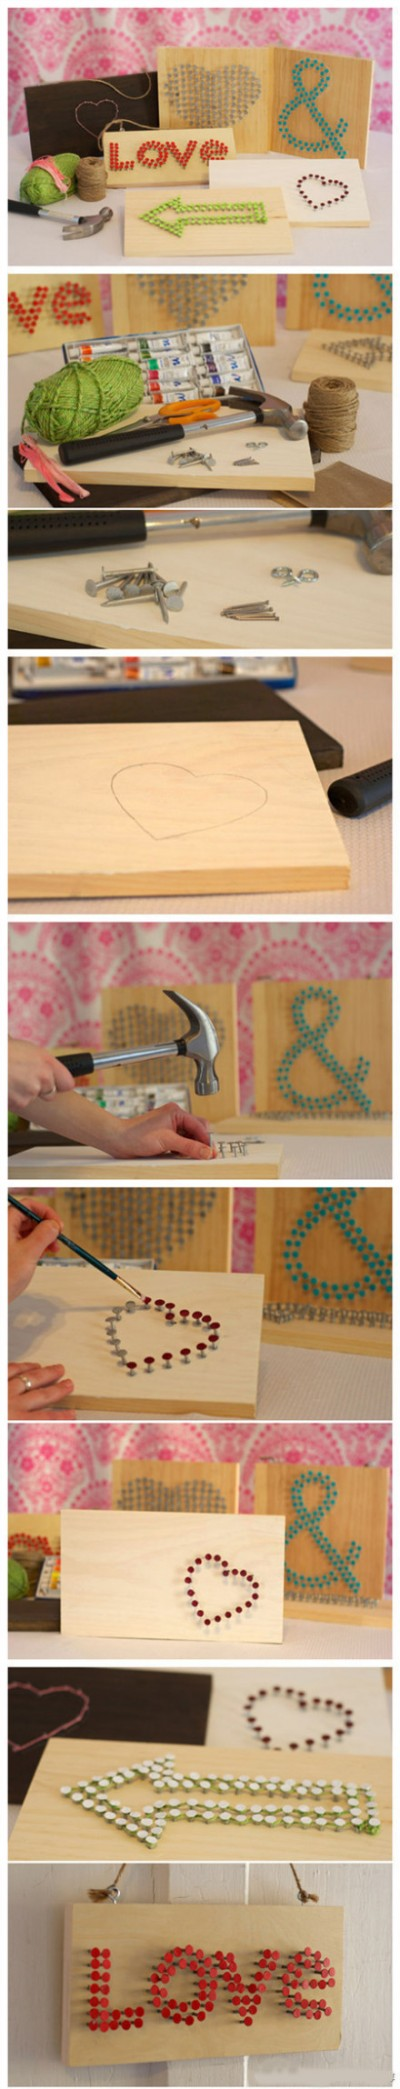 How to make lovely sign boards step by step DIY tutorial instructions